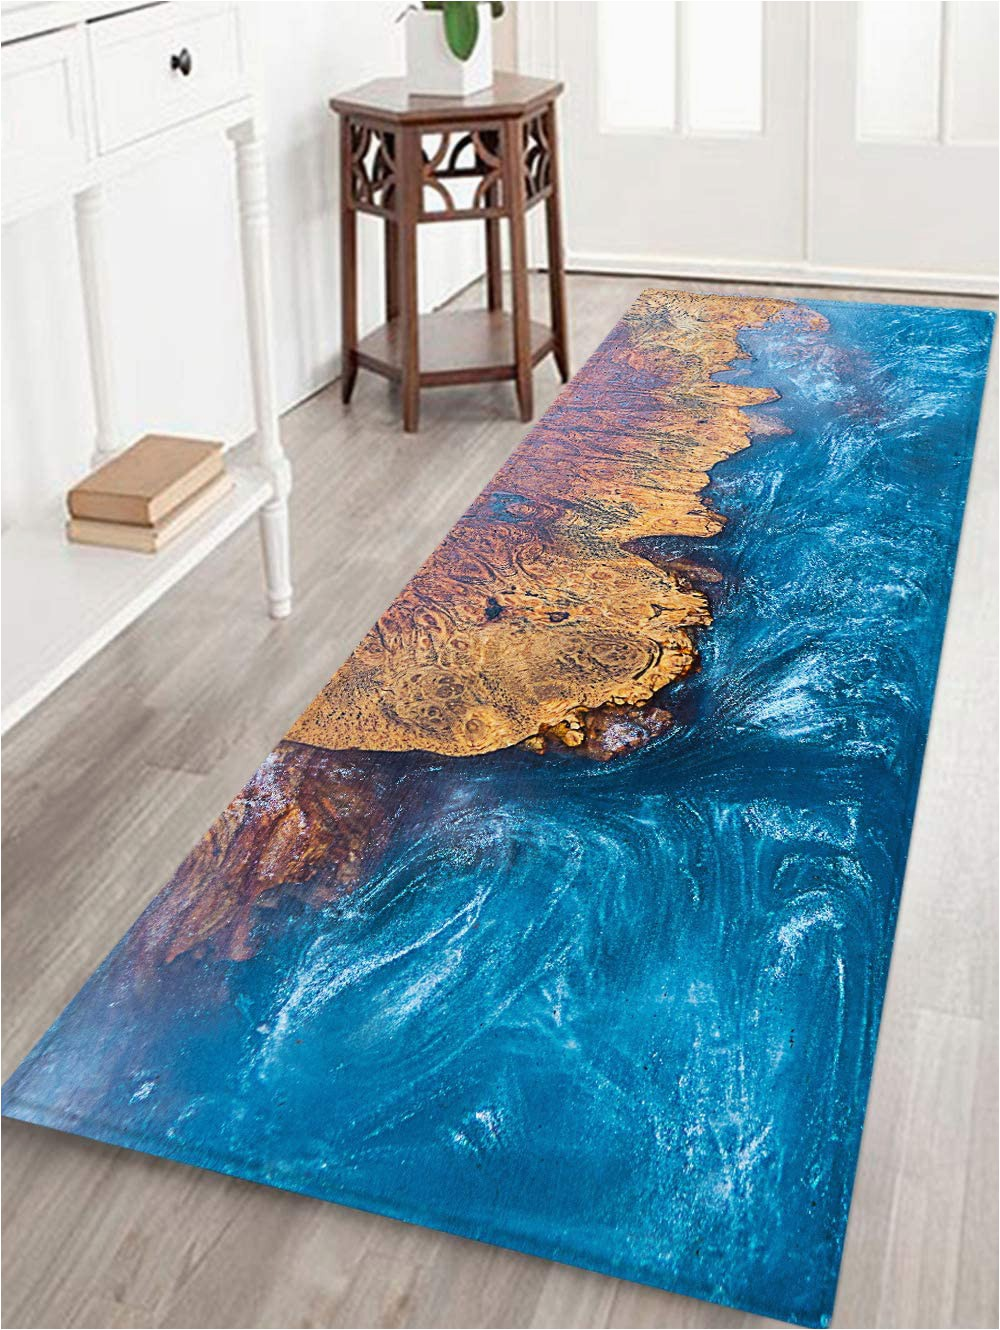 Bath Rugs with Rubber Backing Bathroom Rug Non Slip Flannel Microfiber Bath Mat area Rug with Water Resistant Rubber Back Anti Slip for Kitchen and Bathroom